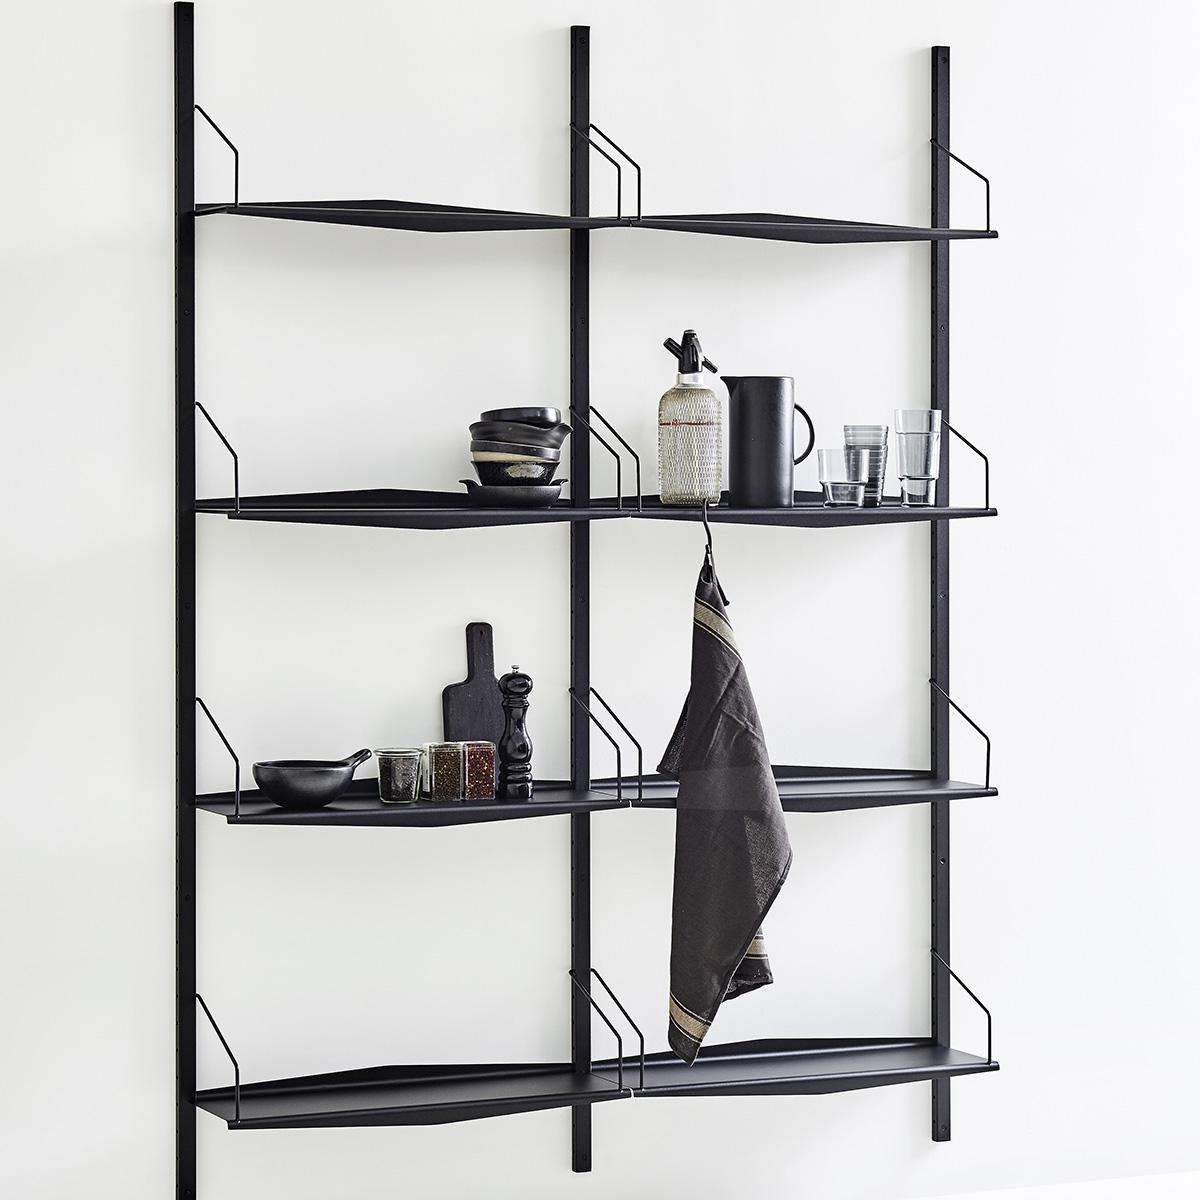 1200x1200_SYSTEM ULTRA_black powder coated steel_LB18 copy